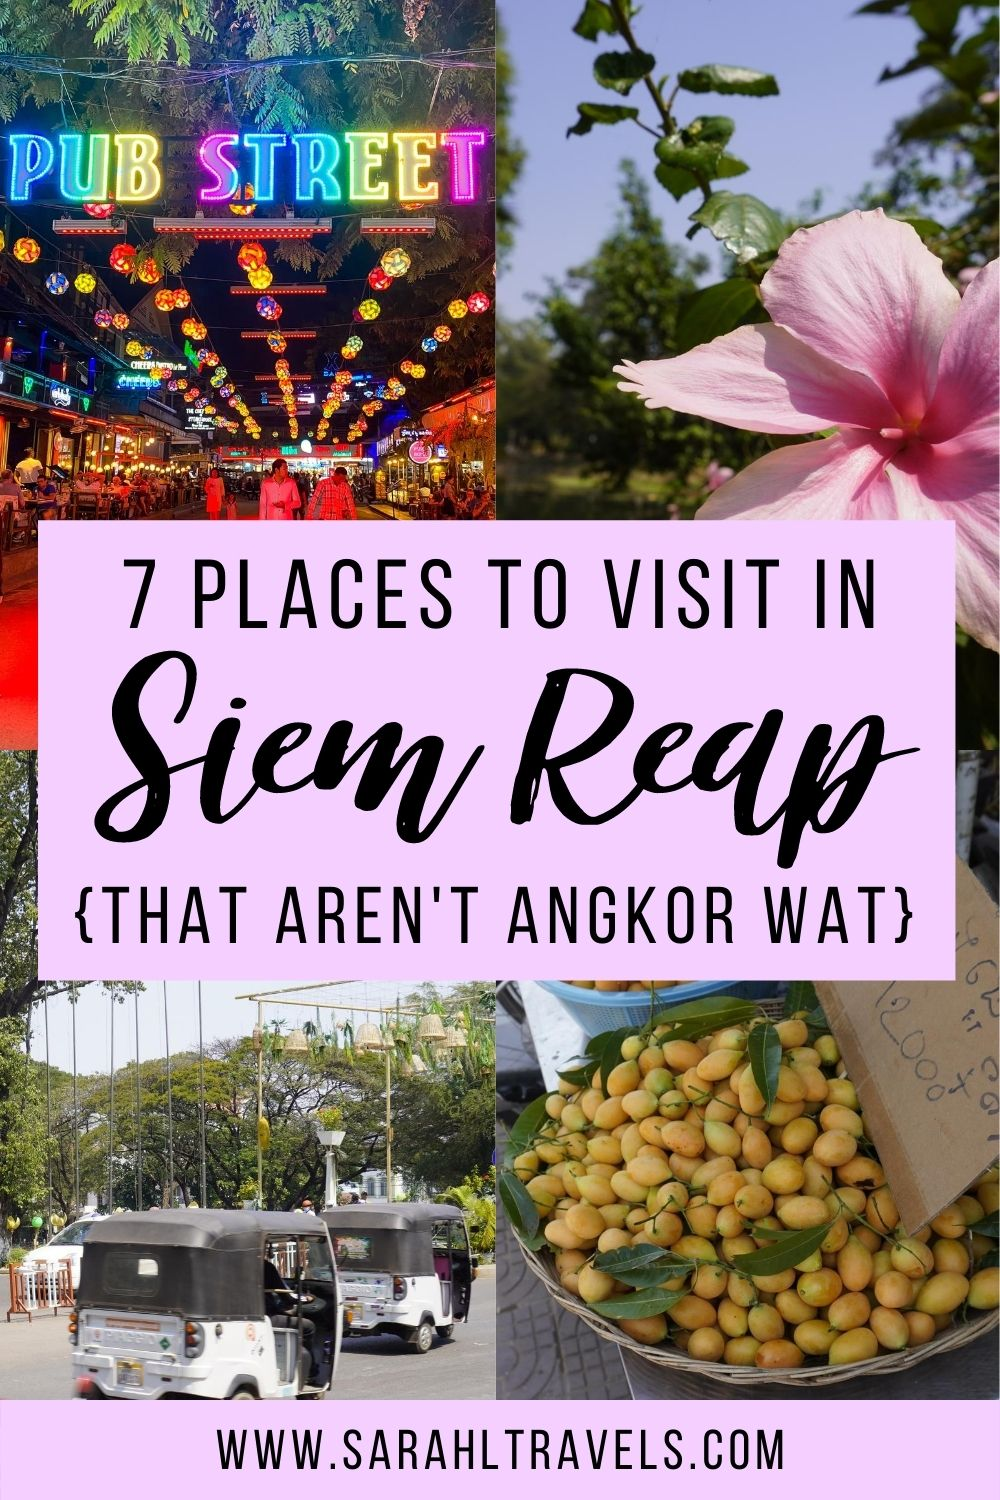 Image grid with Pub Street, a pink flower, white tuk tuks, and produce for sale with text overlay: 7 Places to Visit in Siem Reap that aren't Angkor Wat